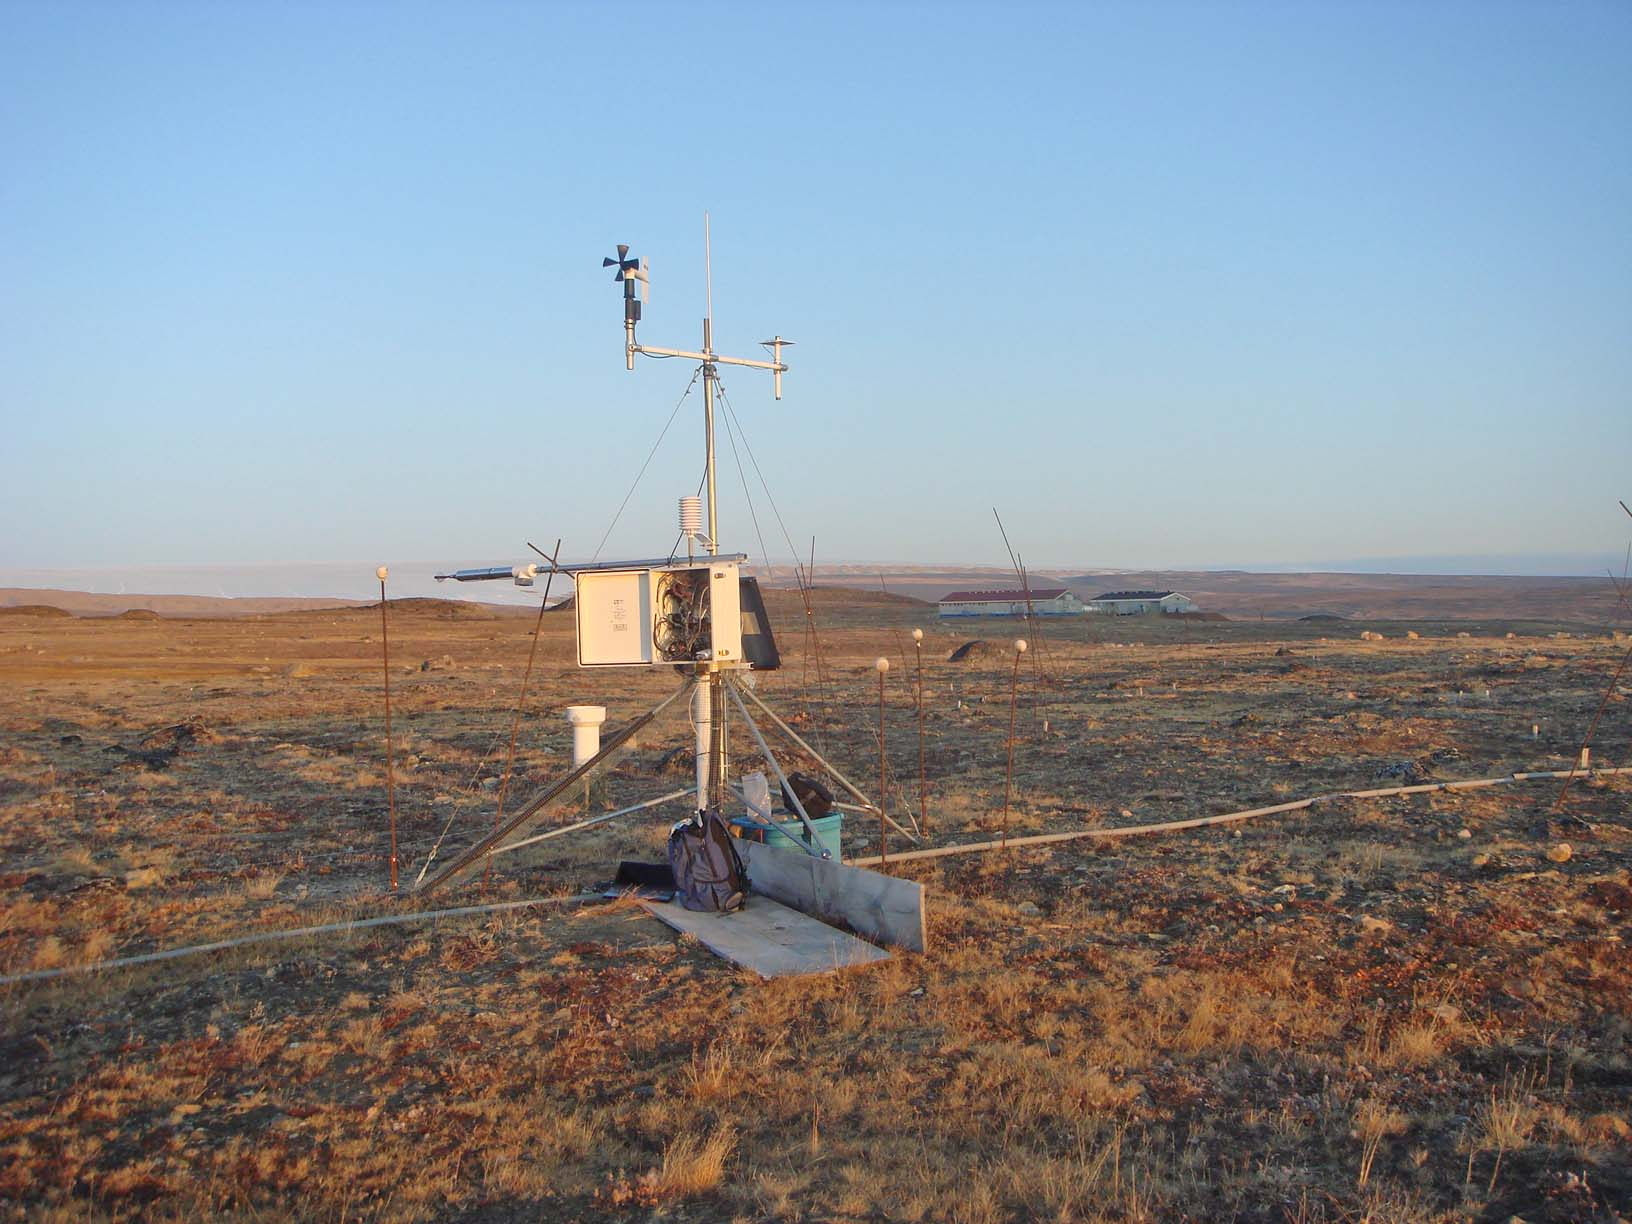 This weather station near Thule air base monitors/collects a slew of climatic information used by ITEX researchers: temperature, air pressure, wind speed/direction, humidity, precipitation, etc.